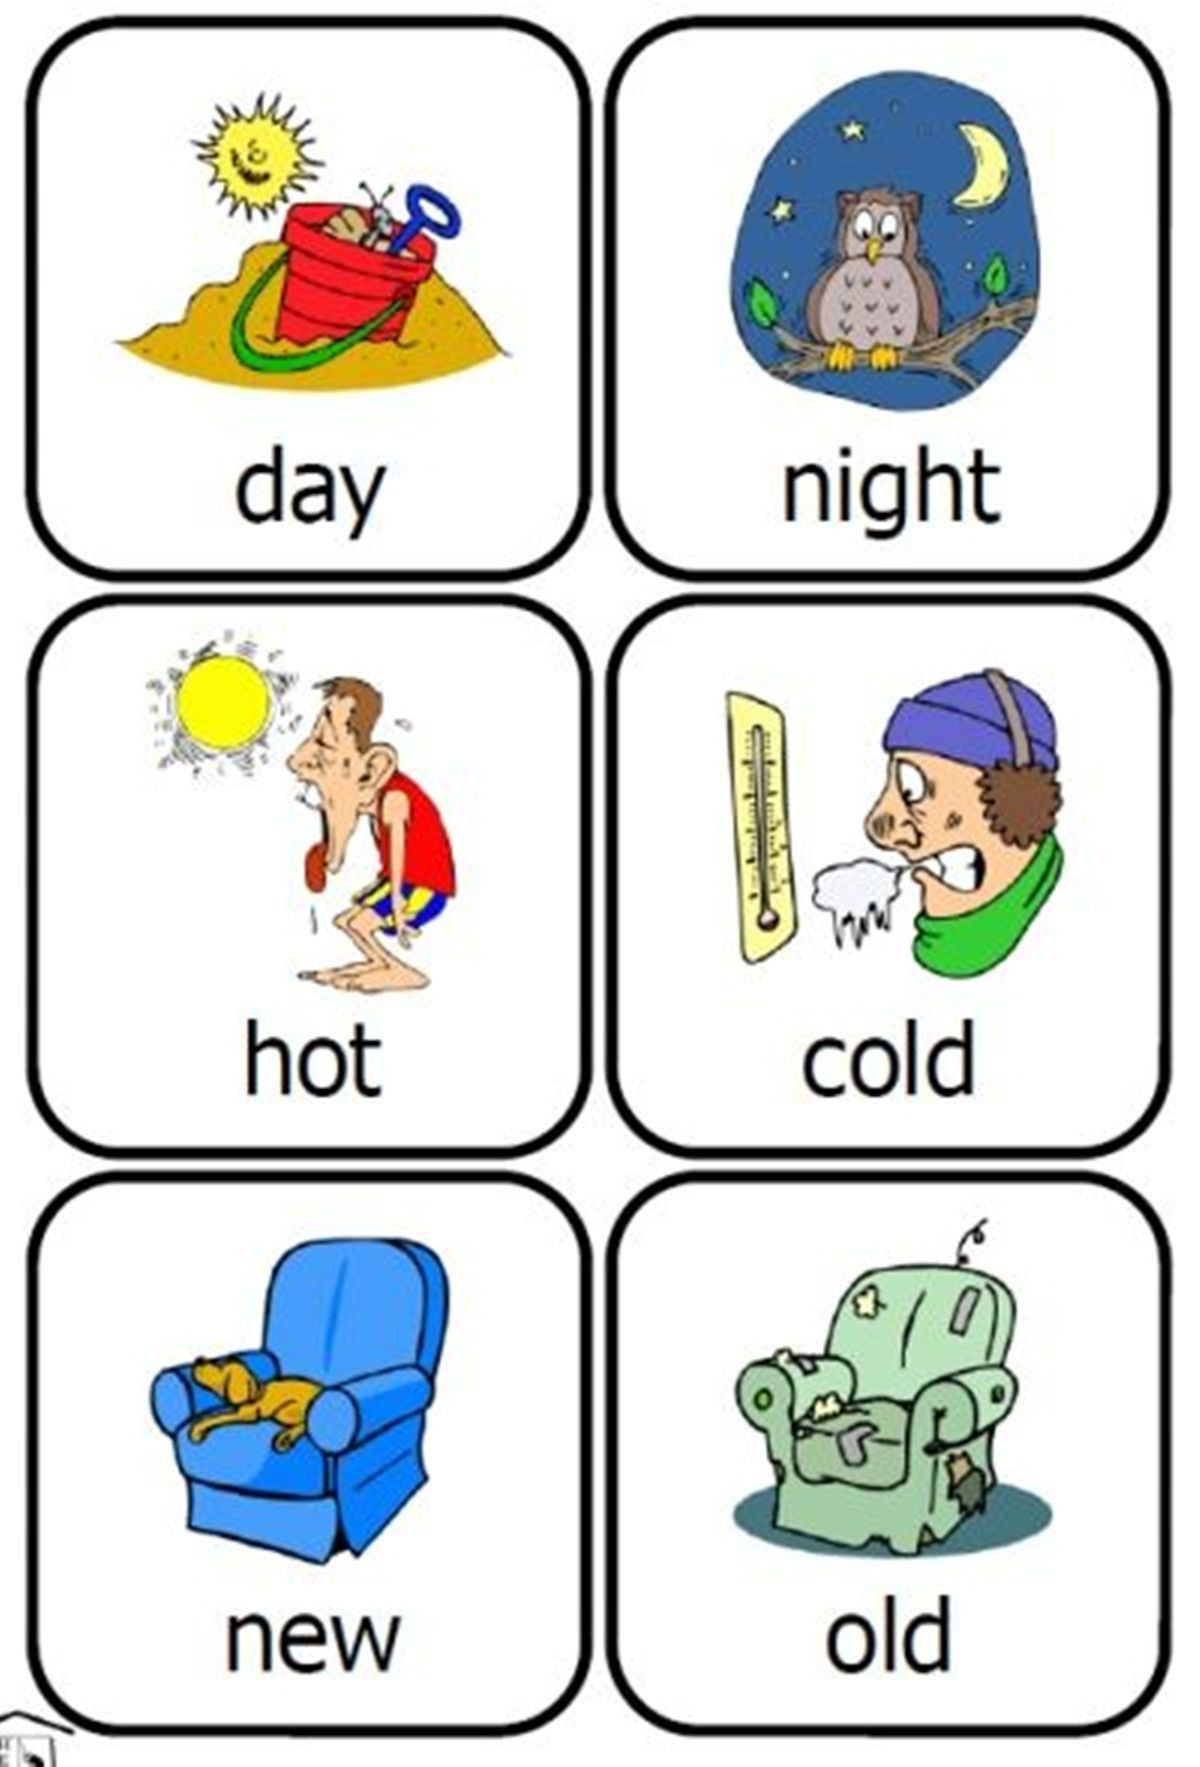 Opposites Preschool Worksheets Mon Opposite Words In English